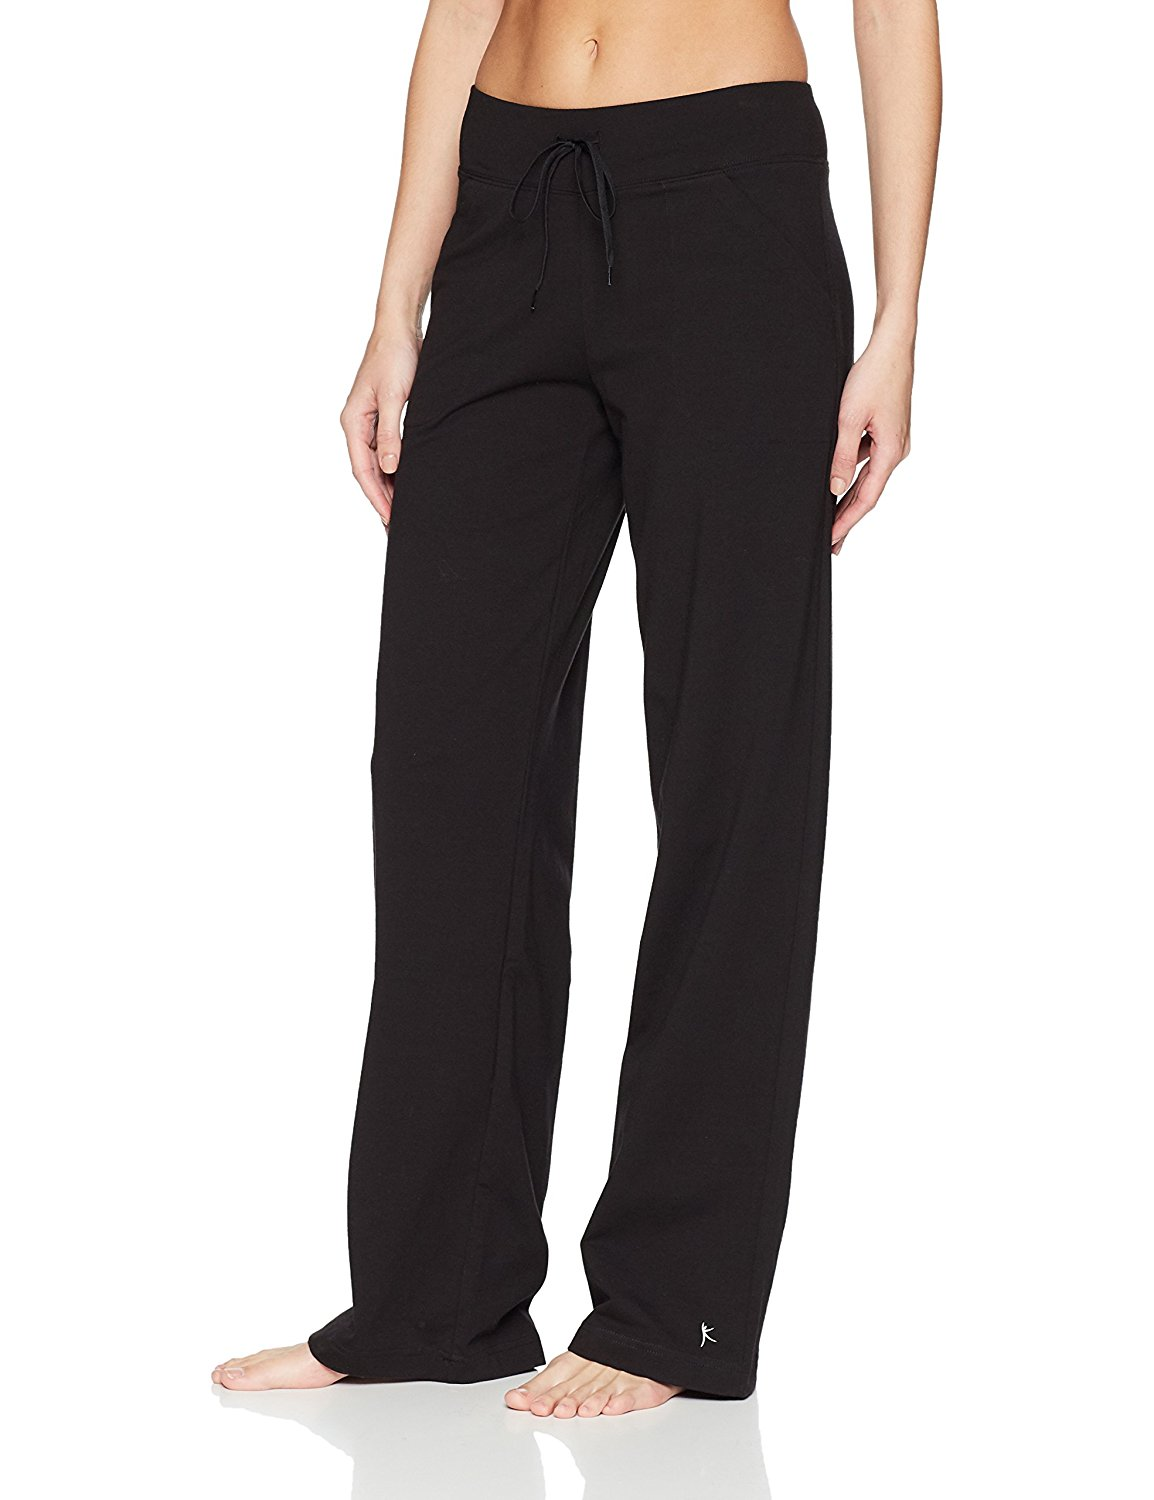 abe985ff7c Get Quotations · Danskin Now Women's Dri More Relaxed Pants, Petite - Yoga,  Fitness, Active Wear